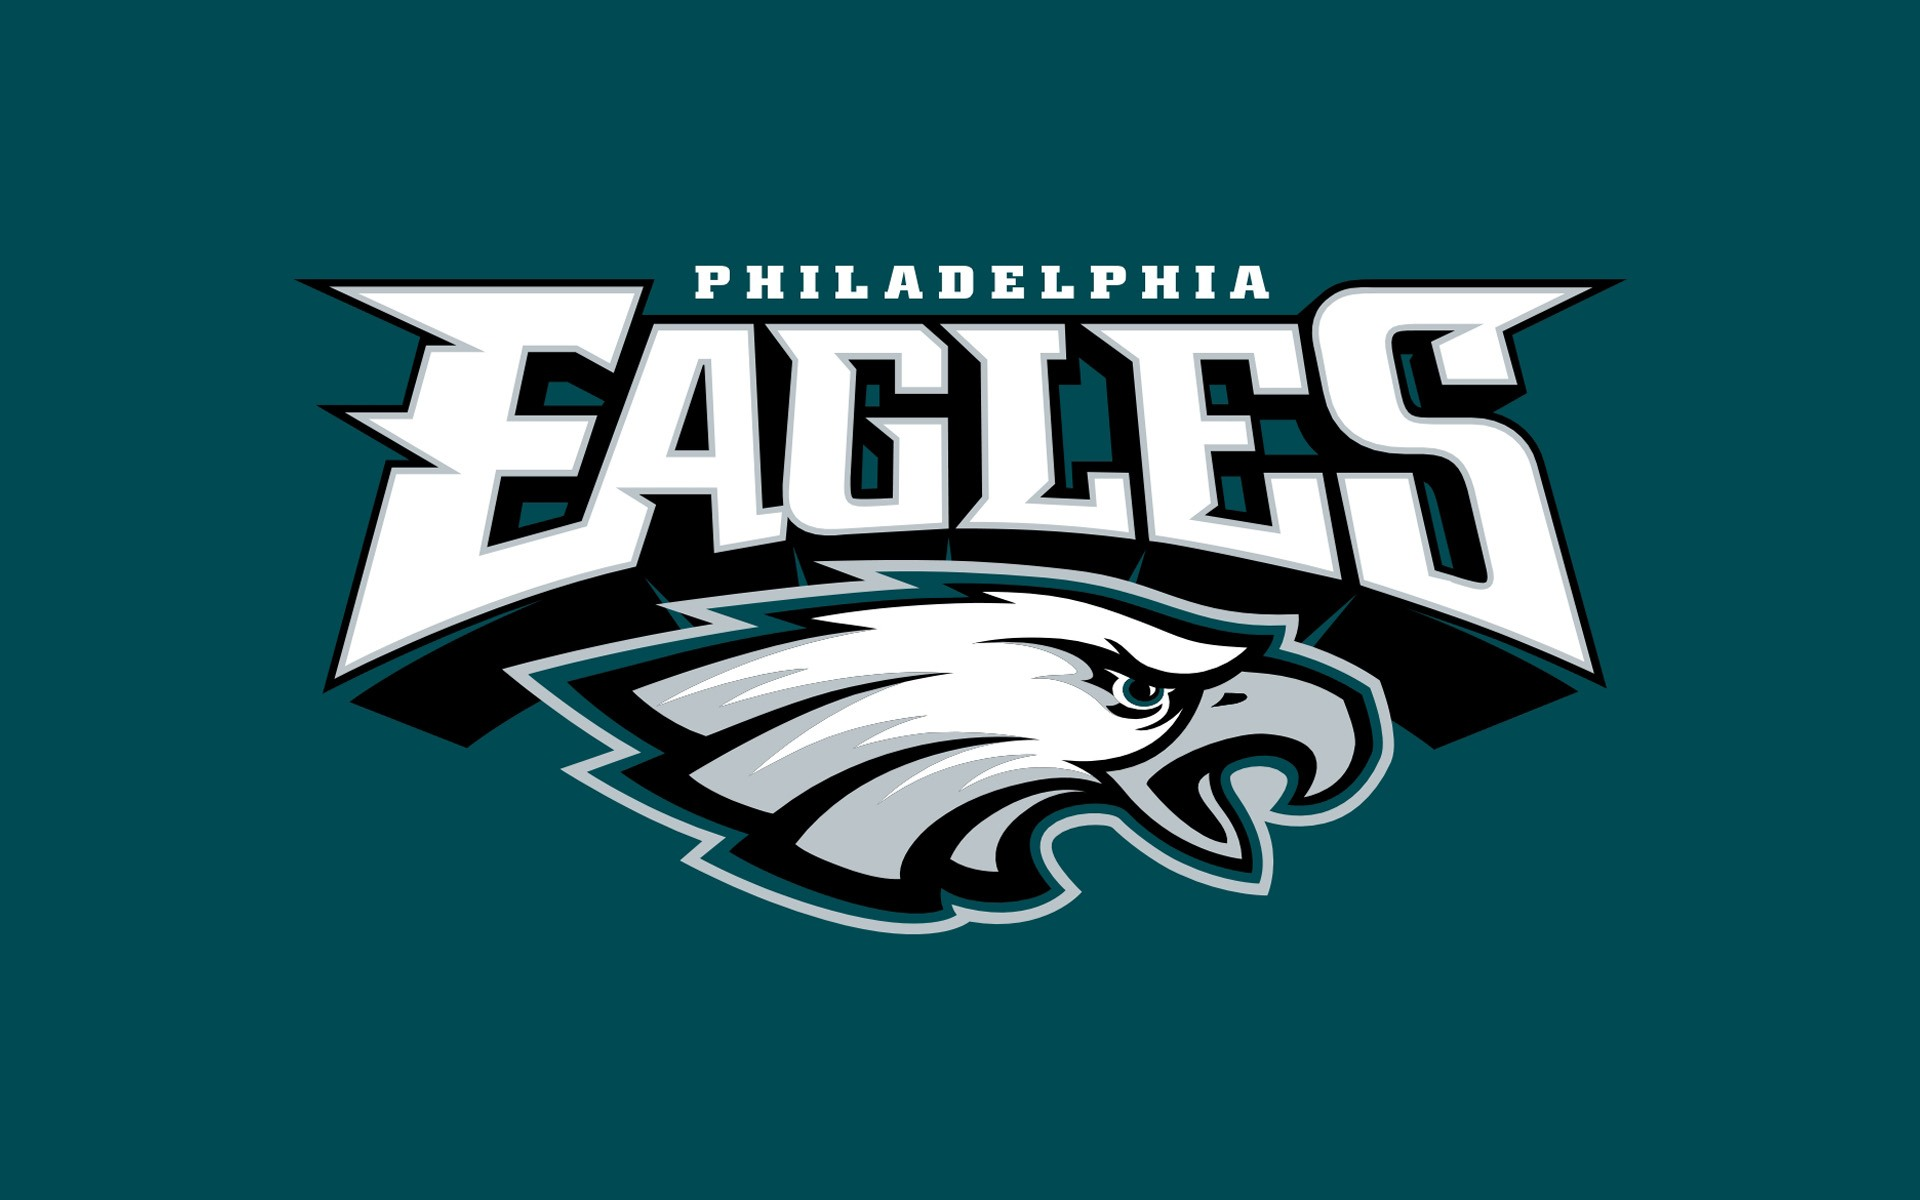 free philadelphia eagles wallpapers  Kjpwg  ideas about Philadelphia Eagles Wallpaper on Pinterest 1920x1200